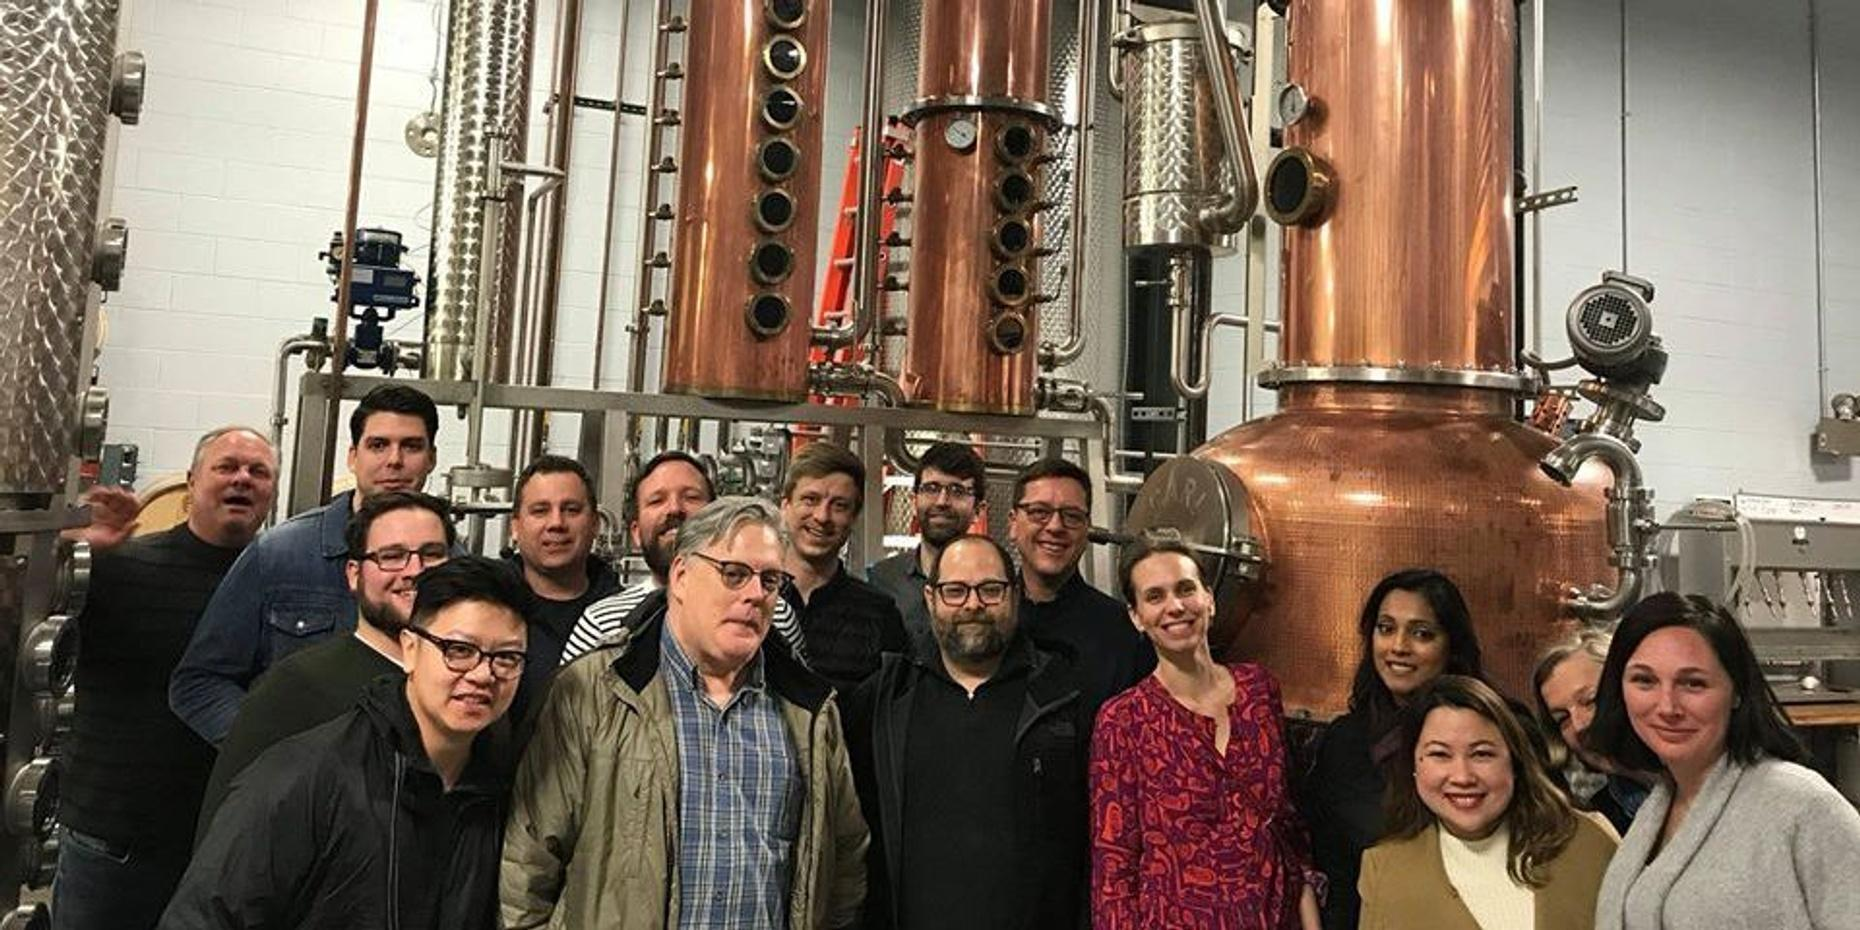 15-Minute Distillery Tour in Chapel Hill